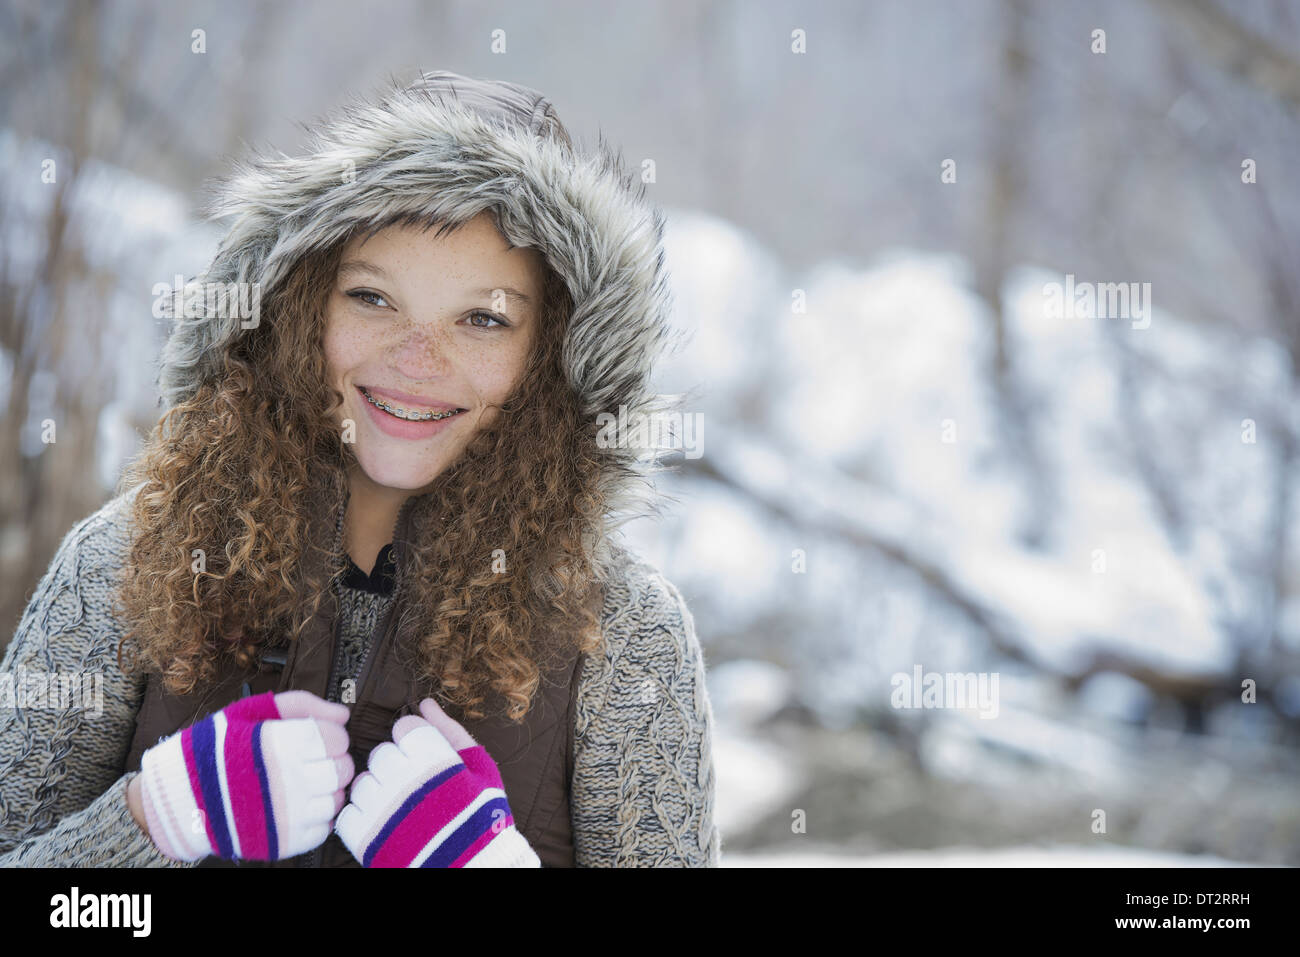 Winter scenery with snow on the ground A young girl in a woolly hat with ski gloves on - Stock Image